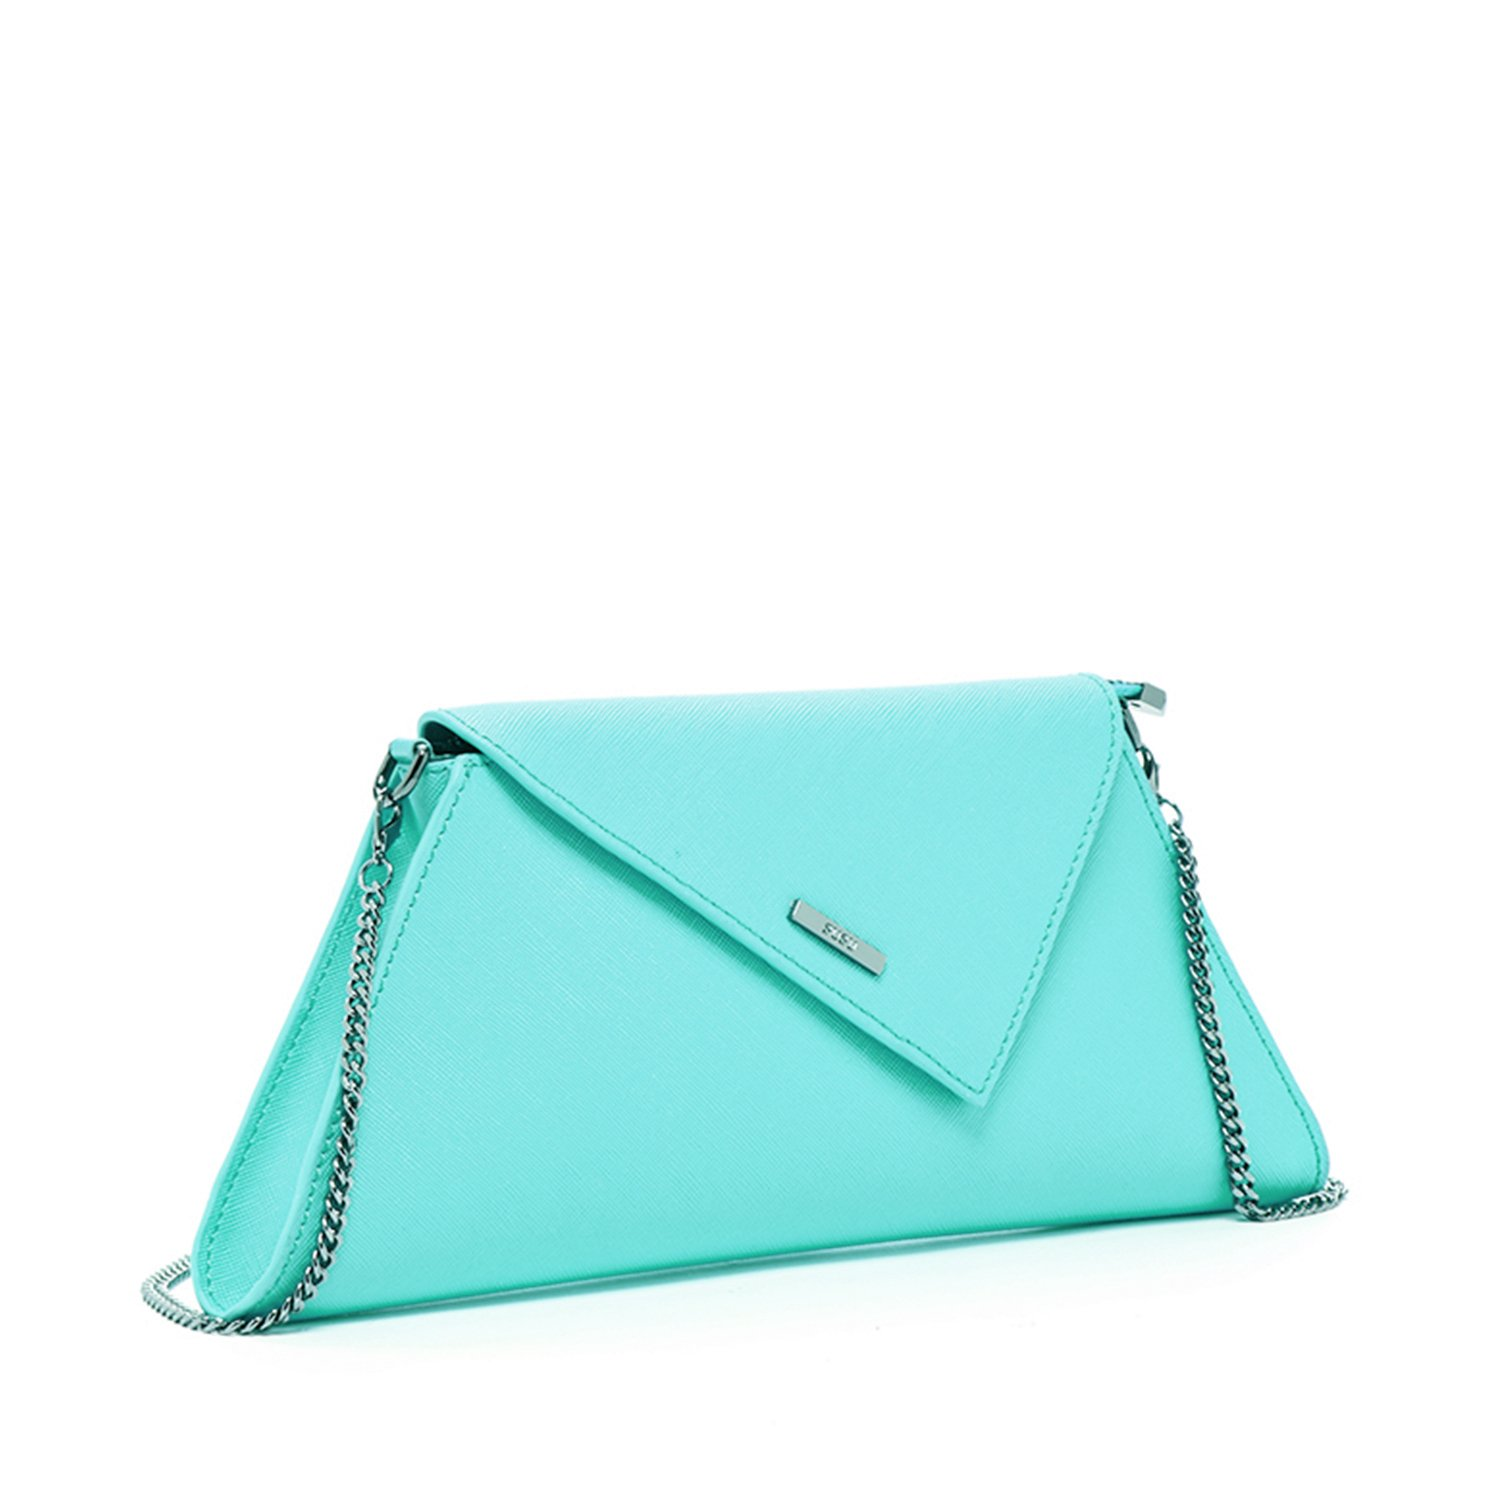 SUSU The Angelica Leather Clutch Purse Evening Bags For Women Fits iPhone 8 Plus and Wallet 11 Colors